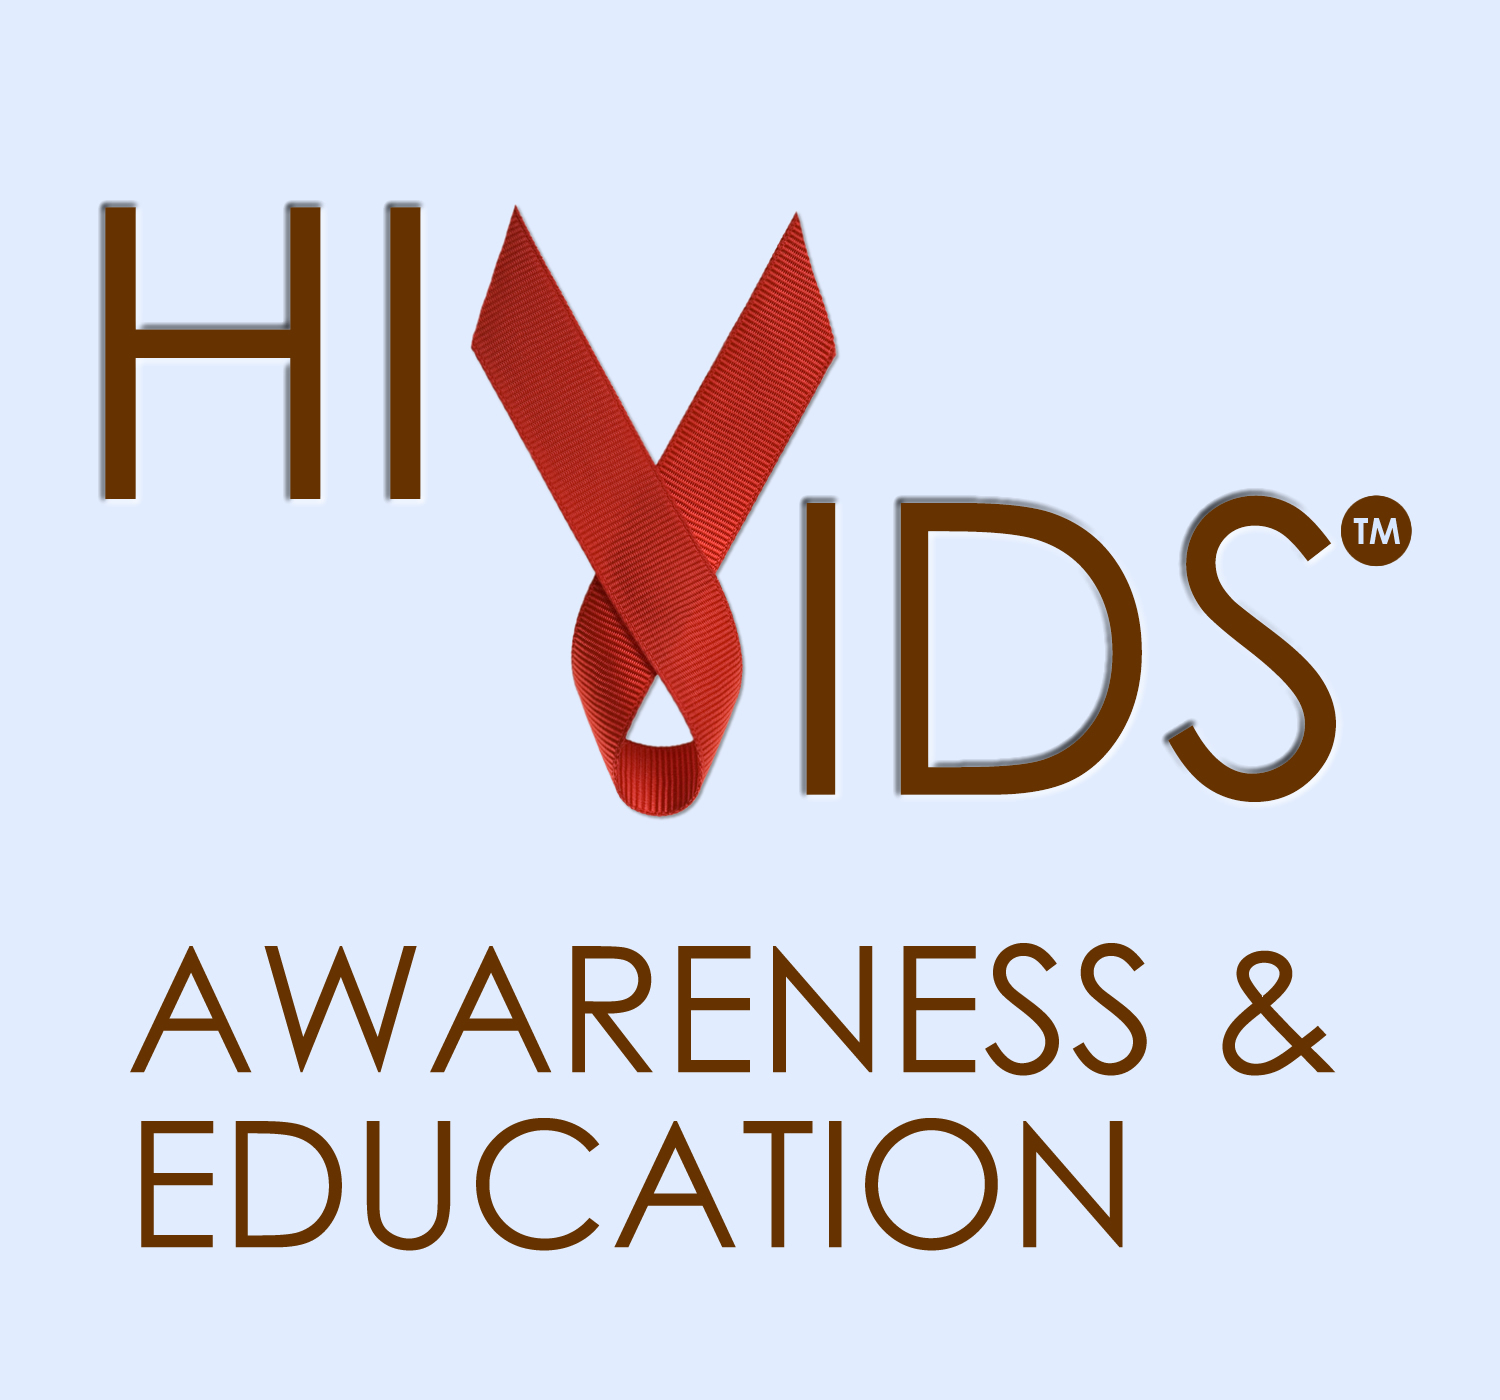 Argumentative Essay On Hiv/Aids